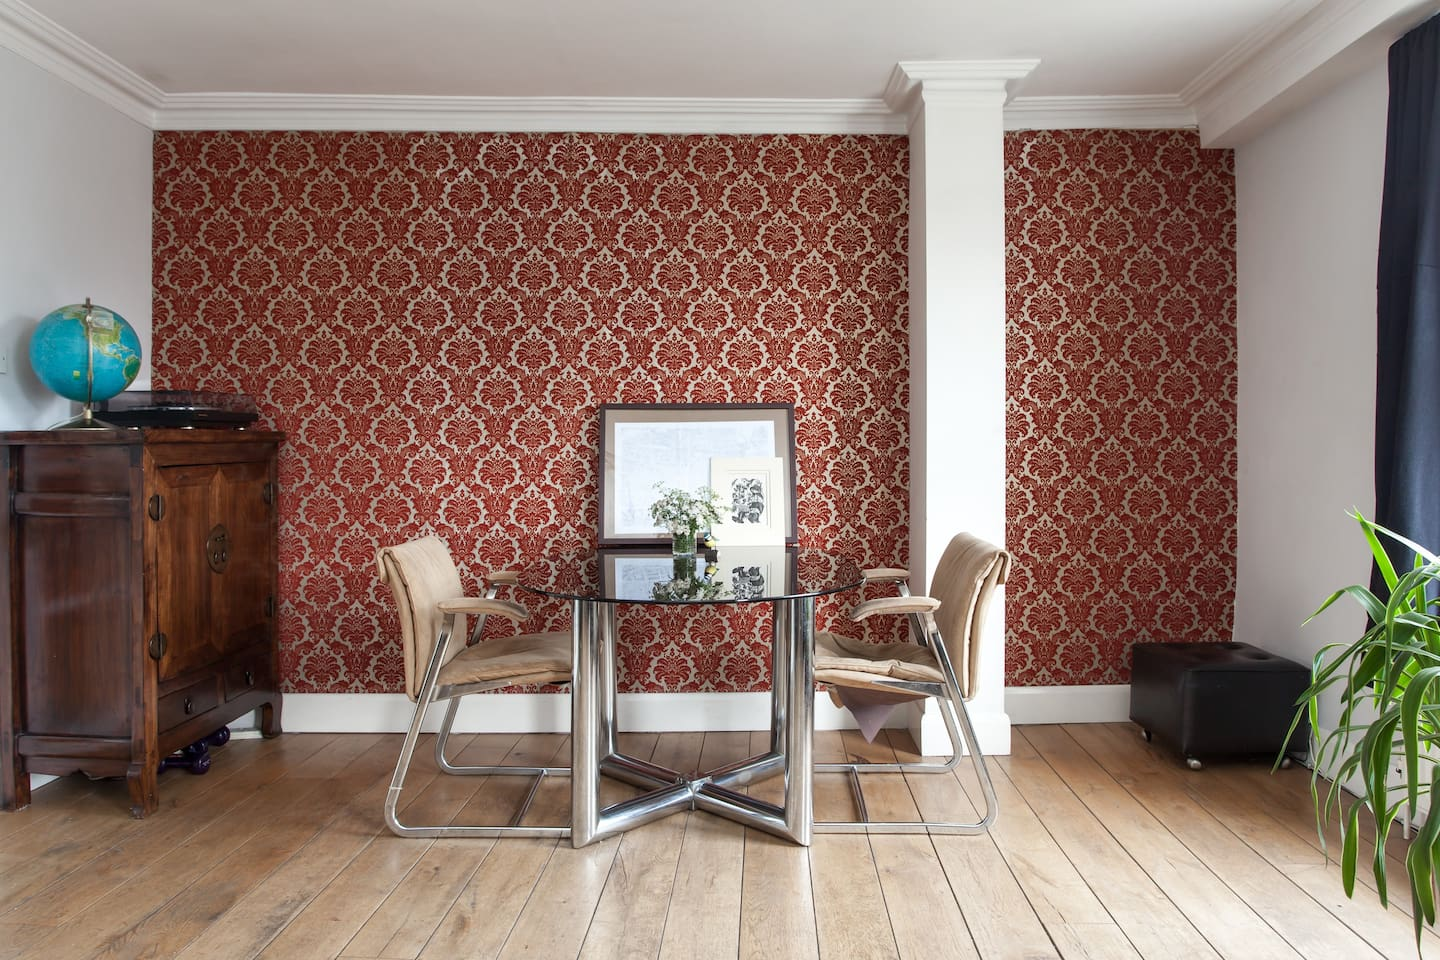 Artistic representation shot of the lounge dinner table (which is 2m long x 1m wide, just in case you can't see it). The flock wallpaper aims to blend the feel of a 70s curry house and a 60s London boozer ... (kidding!)